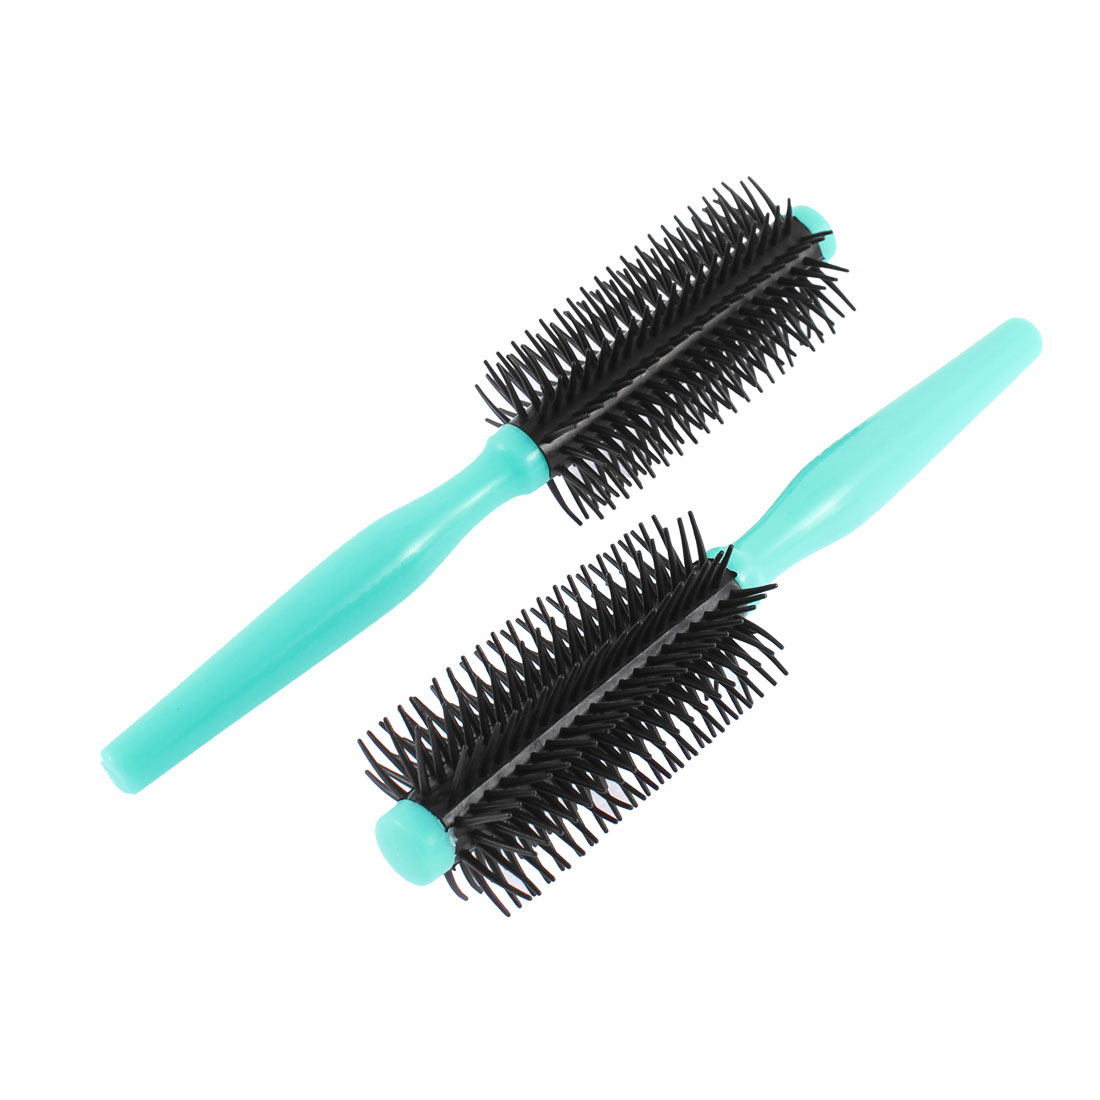 Unique Bargains Flexible Hair Styling Hair Curling Roller Comb Brush 2 Pcs - image 1 of 1